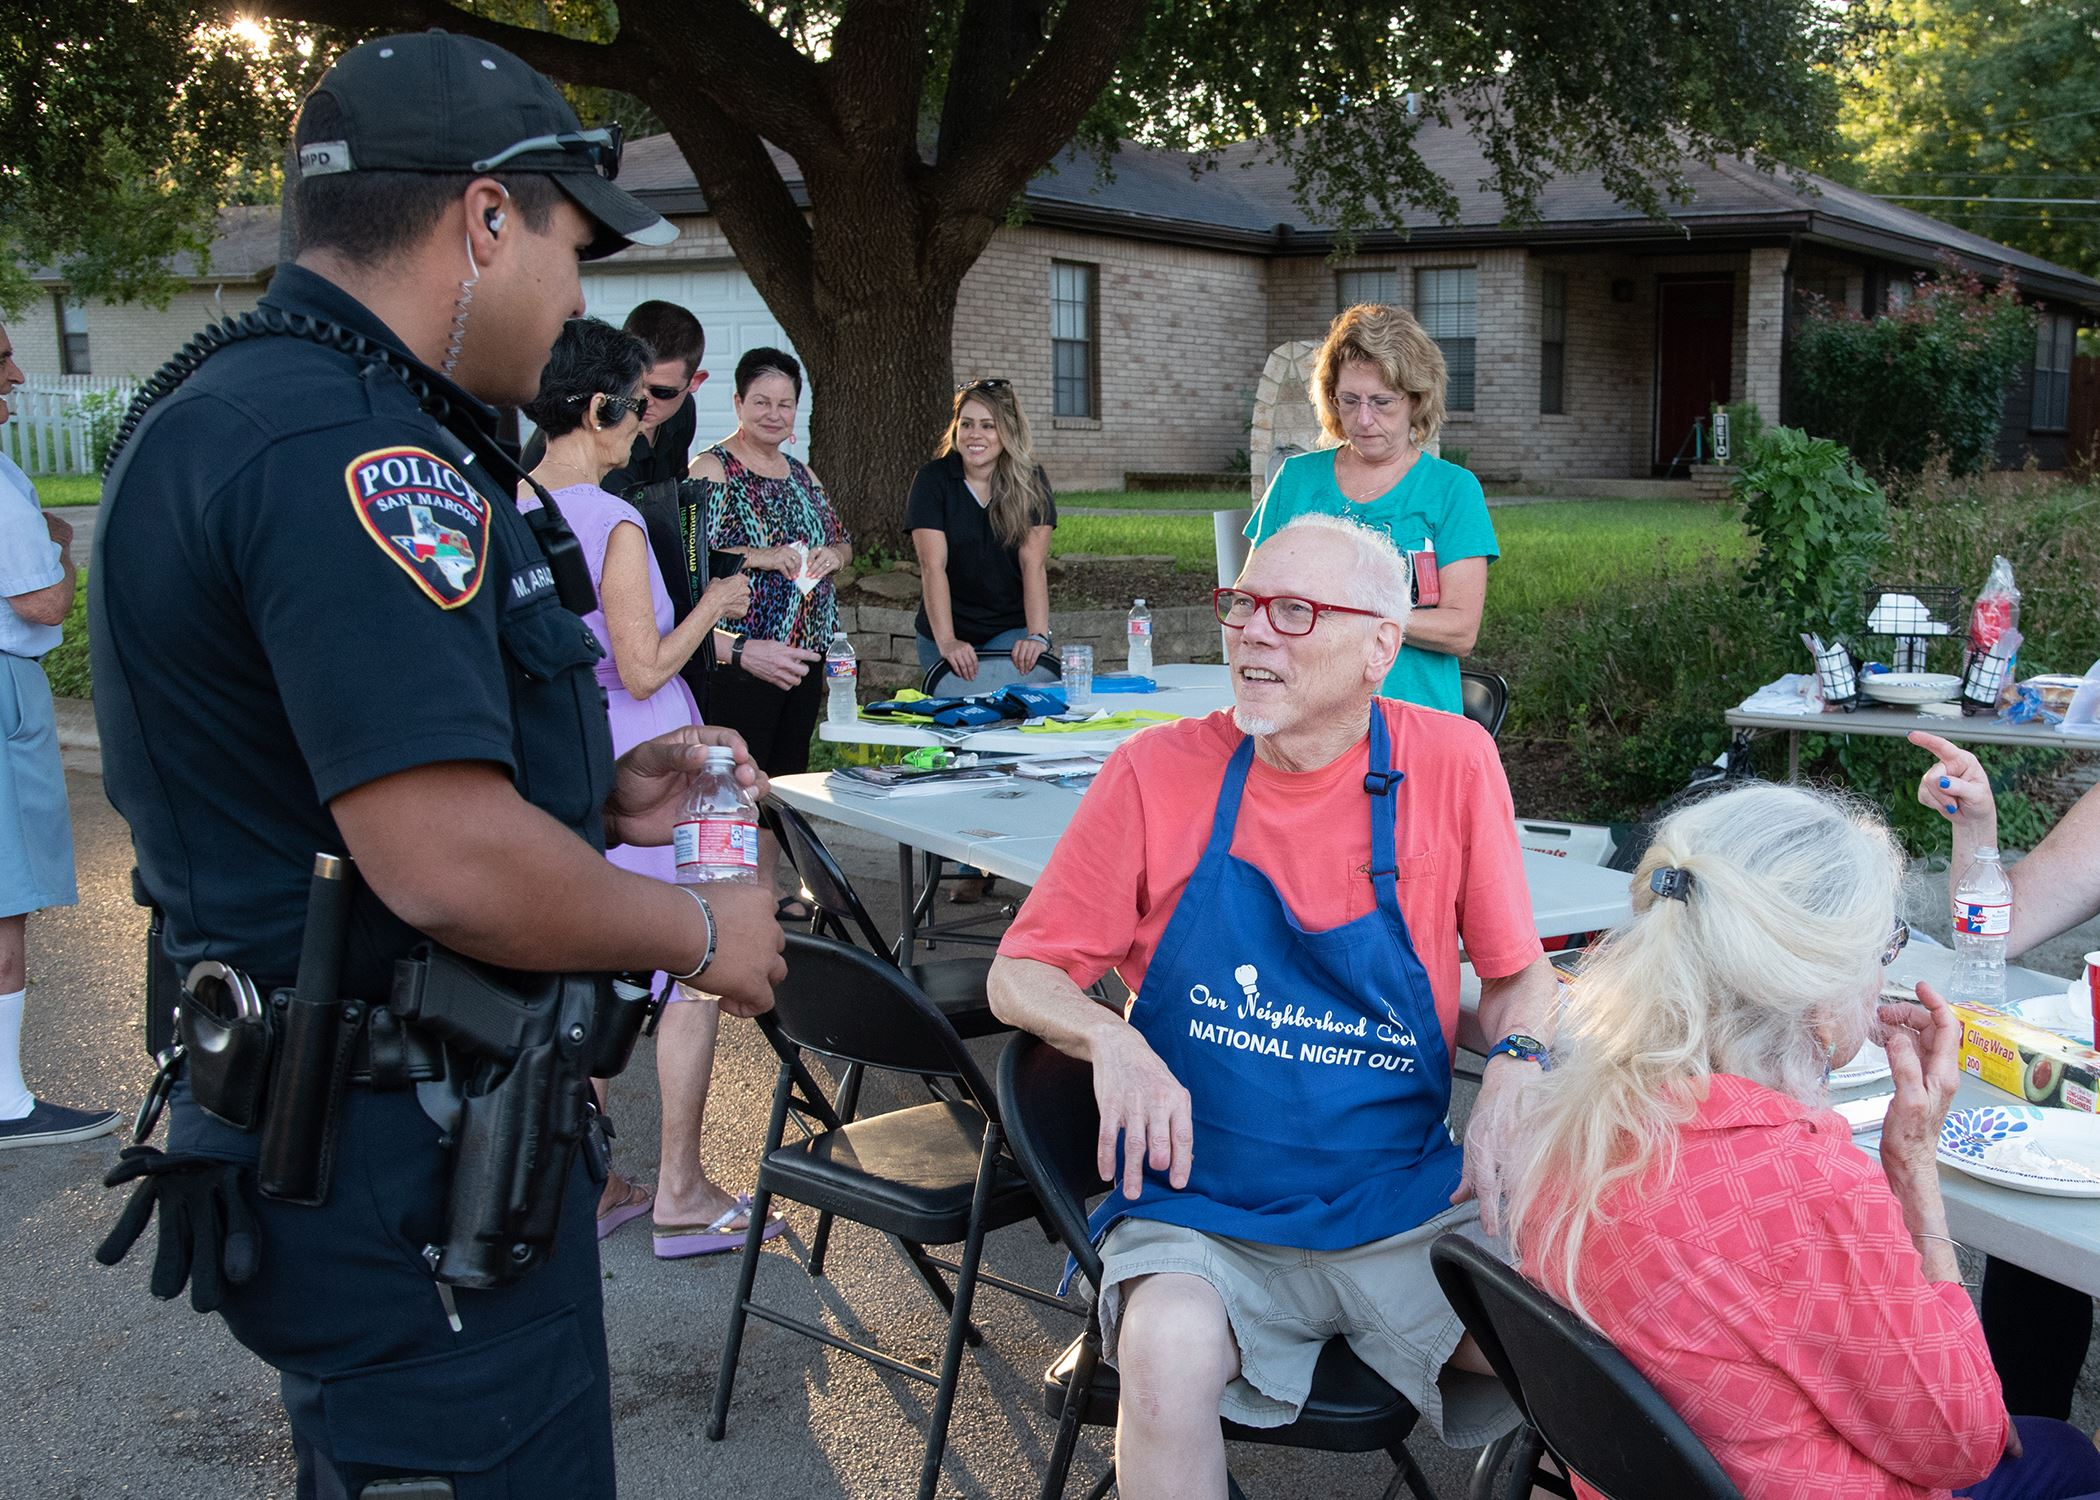 Photo of neighbors talking to police officer during National Night Out 2018